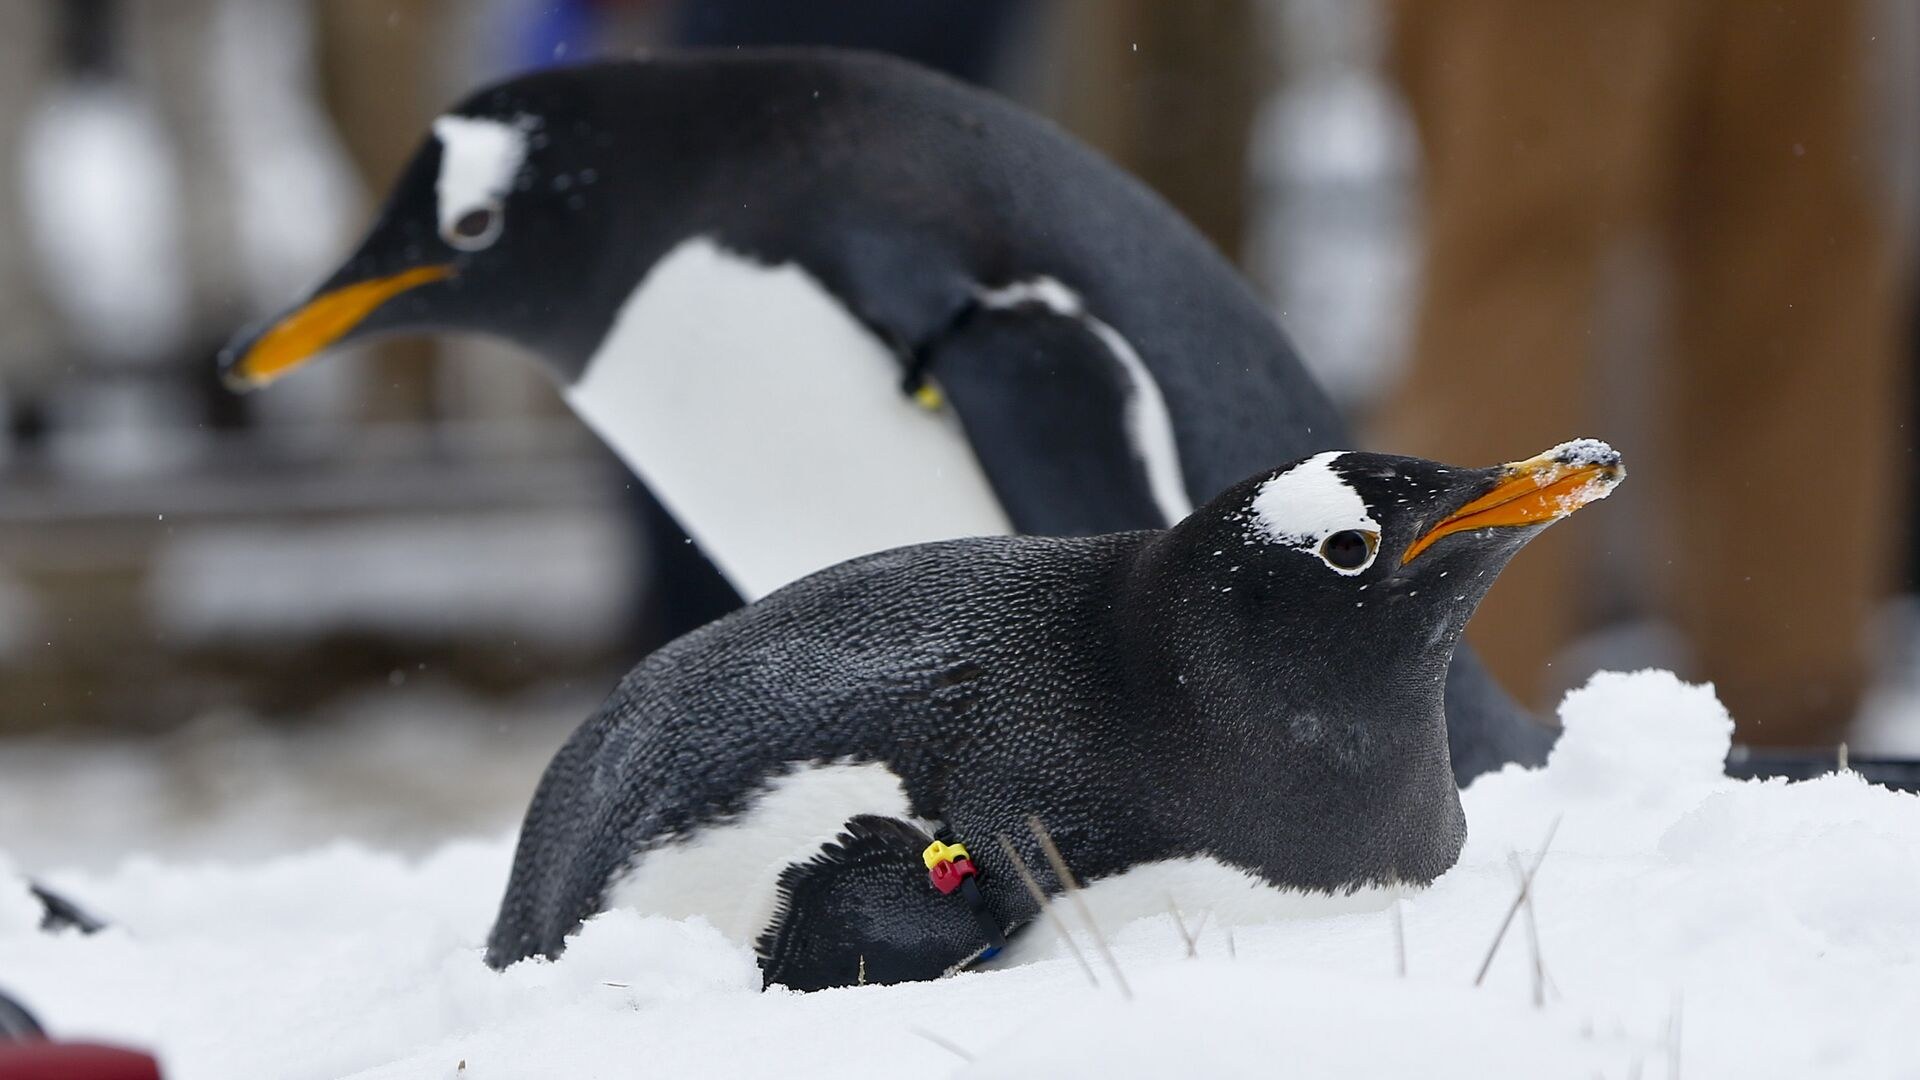 A Gentoo penguins in the snow at the Pittsburgh Zoo and PPG Aquarium during a media availability in an outdoors area on Wednesday, Feb. 10, 2016, in Pittsburgh. (AP Photo/Keith Srakocic) - Sputnik International, 1920, 14.09.2021